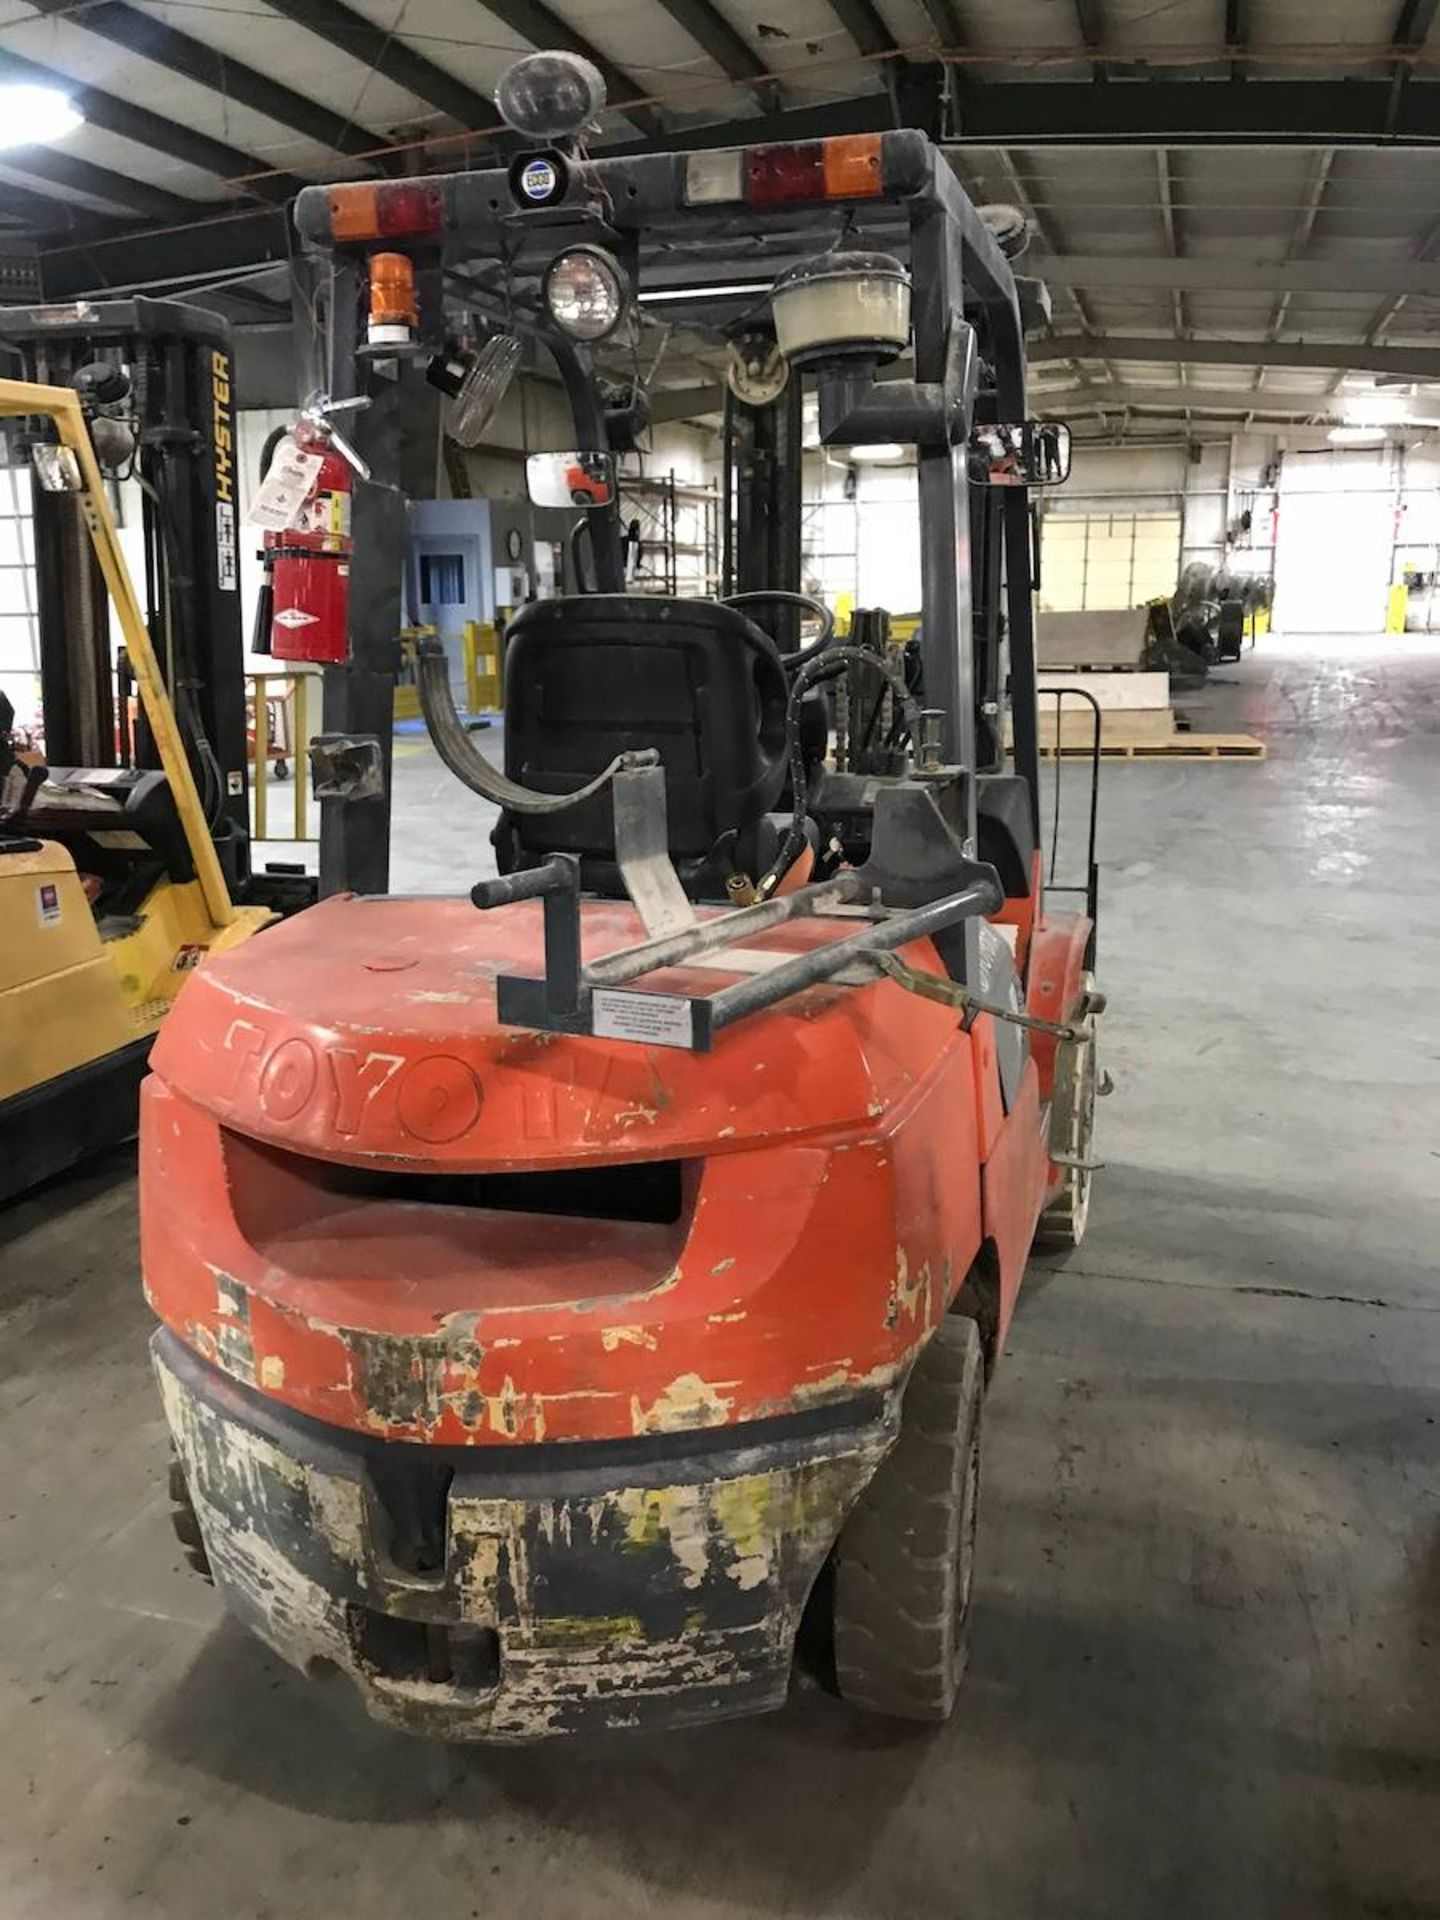 Toyota 7FGU30 Forklift Truck - Image 4 of 6